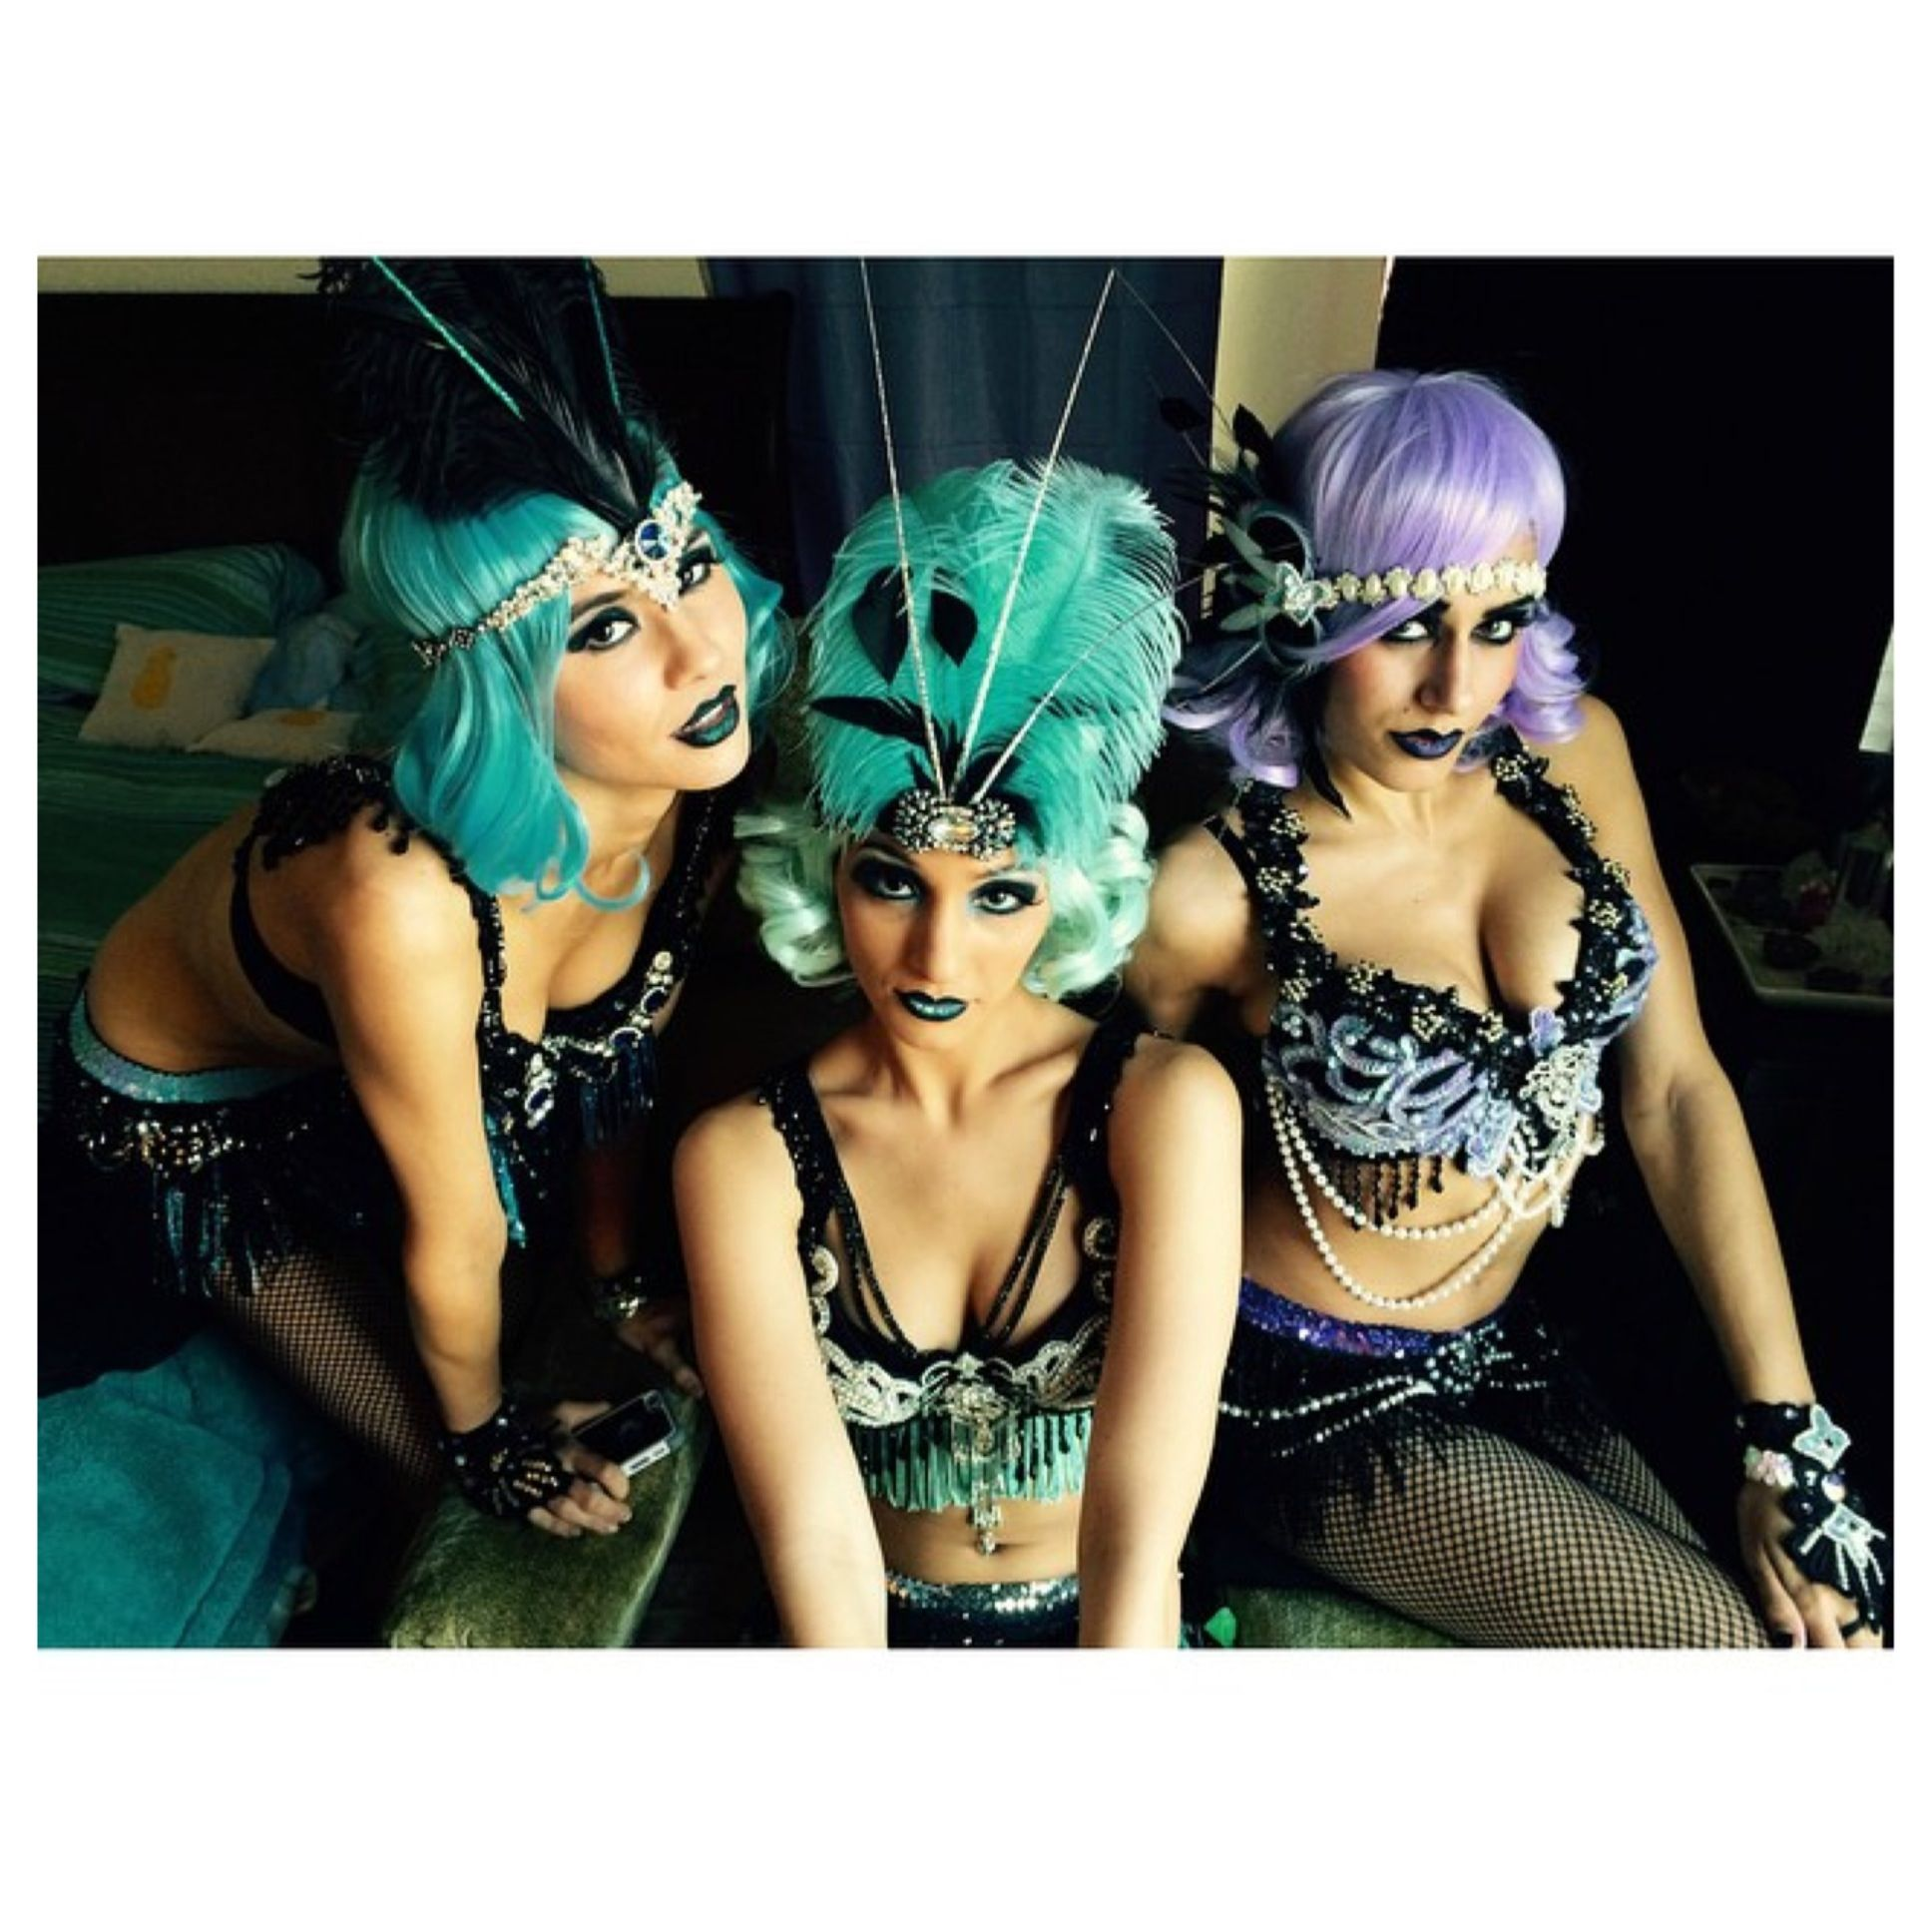 The gorgeous Skill Sirens in head to toe Krave Wear ready for POP NYE